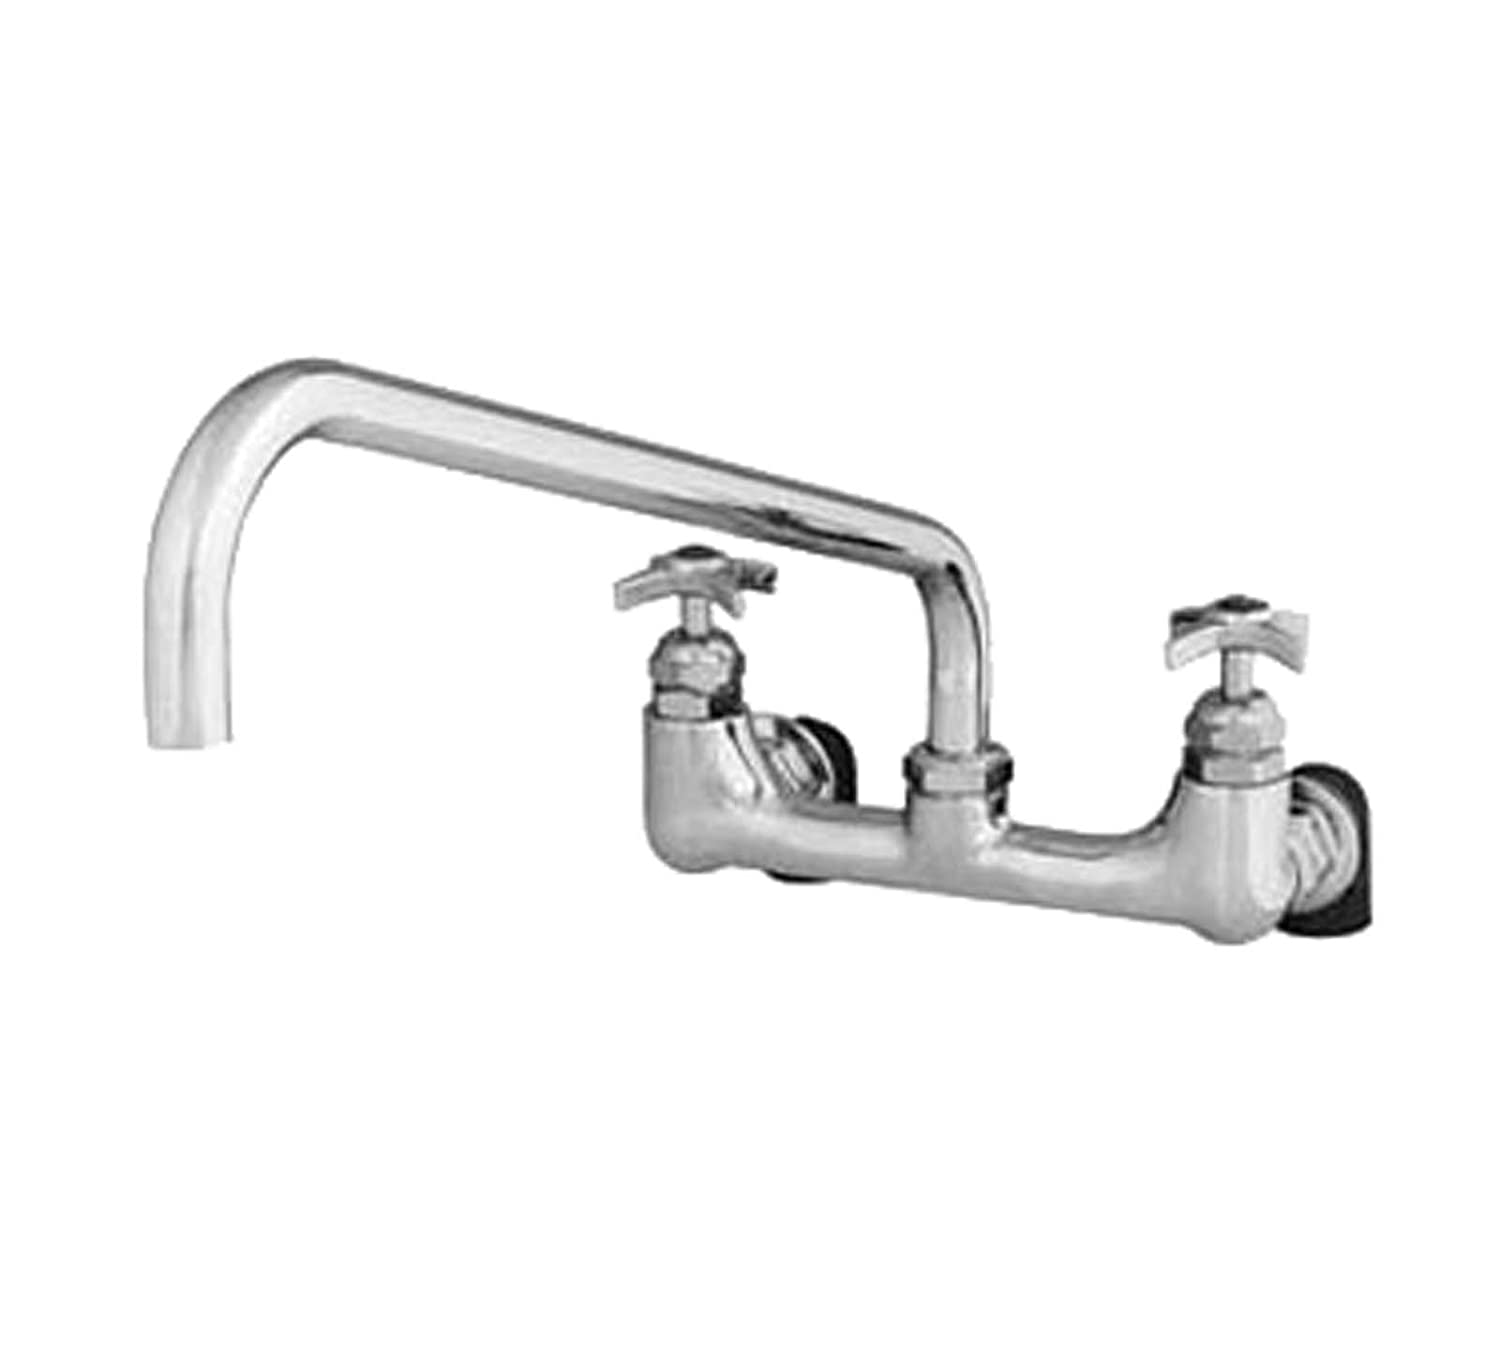 T&S Brass B-0291 Wall Mount Big-Flo Mixing Faucet with 8-Inch Centers and 18-Inch Swing Nozzle Inlets by T&S Brass  B004QM3A9G